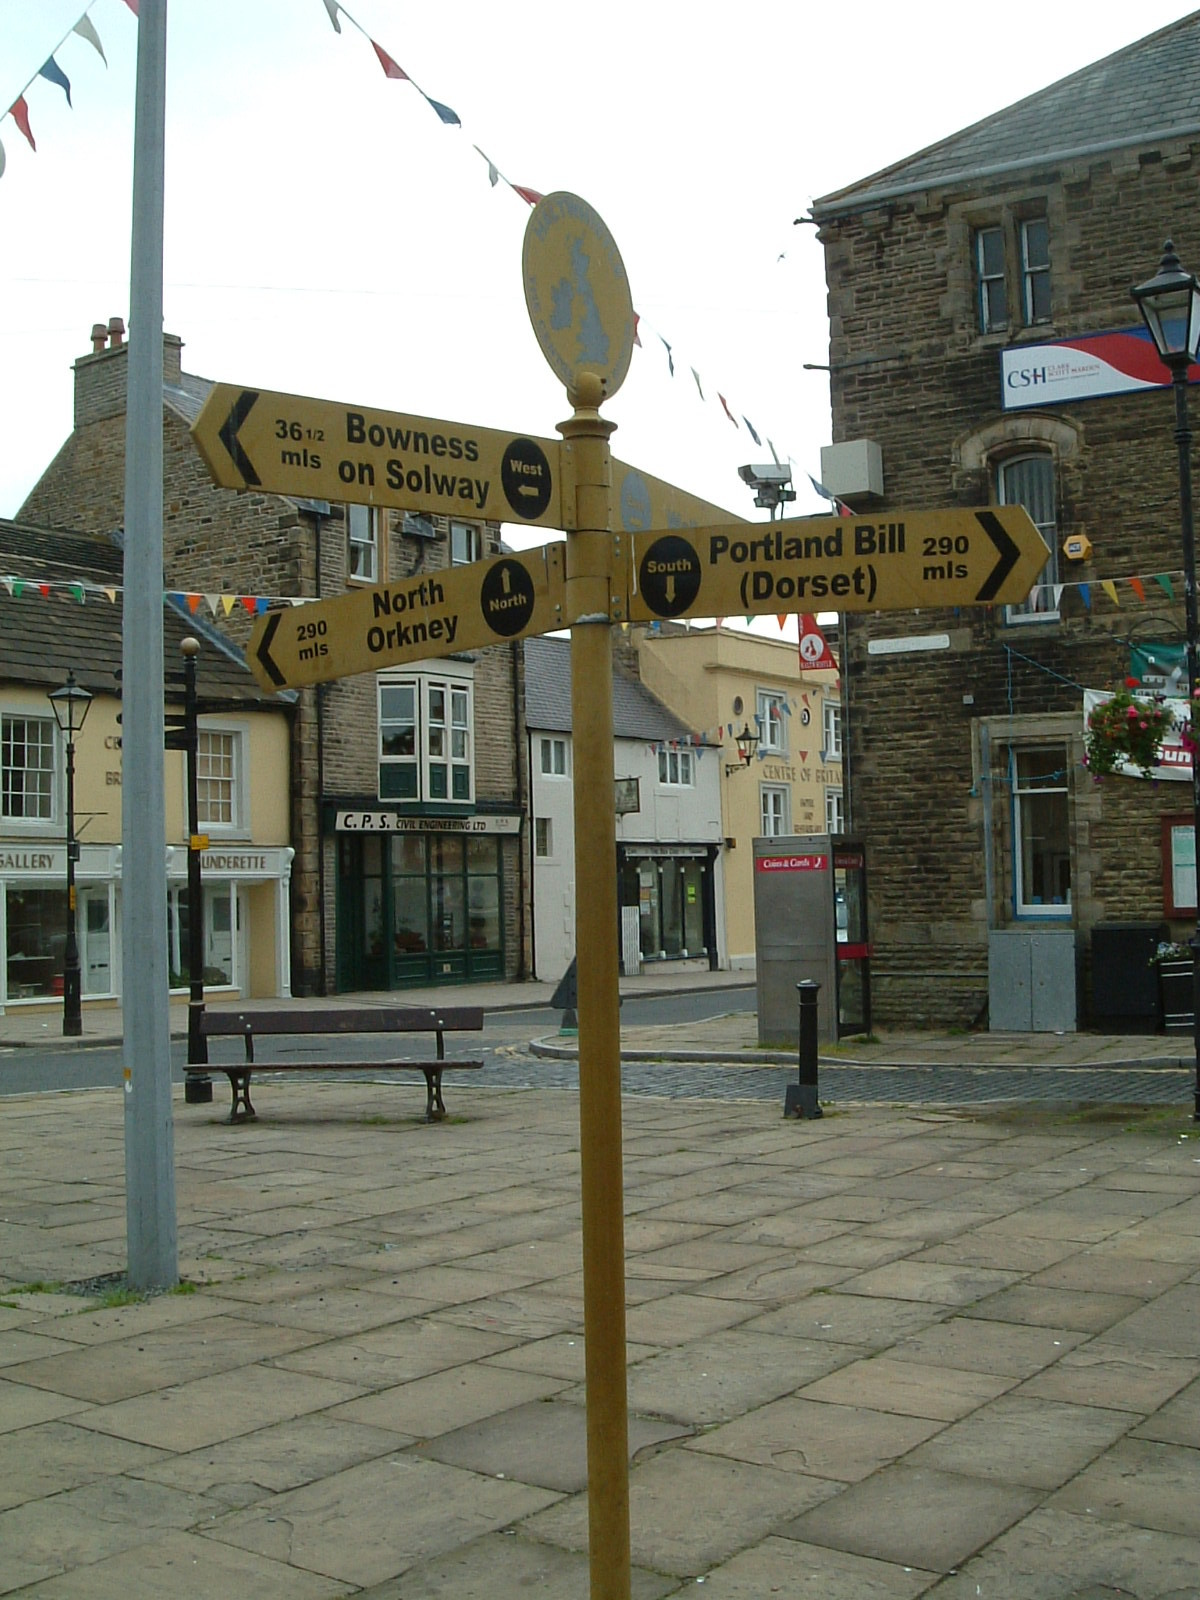 A sign showing distances to the four corners of Britain